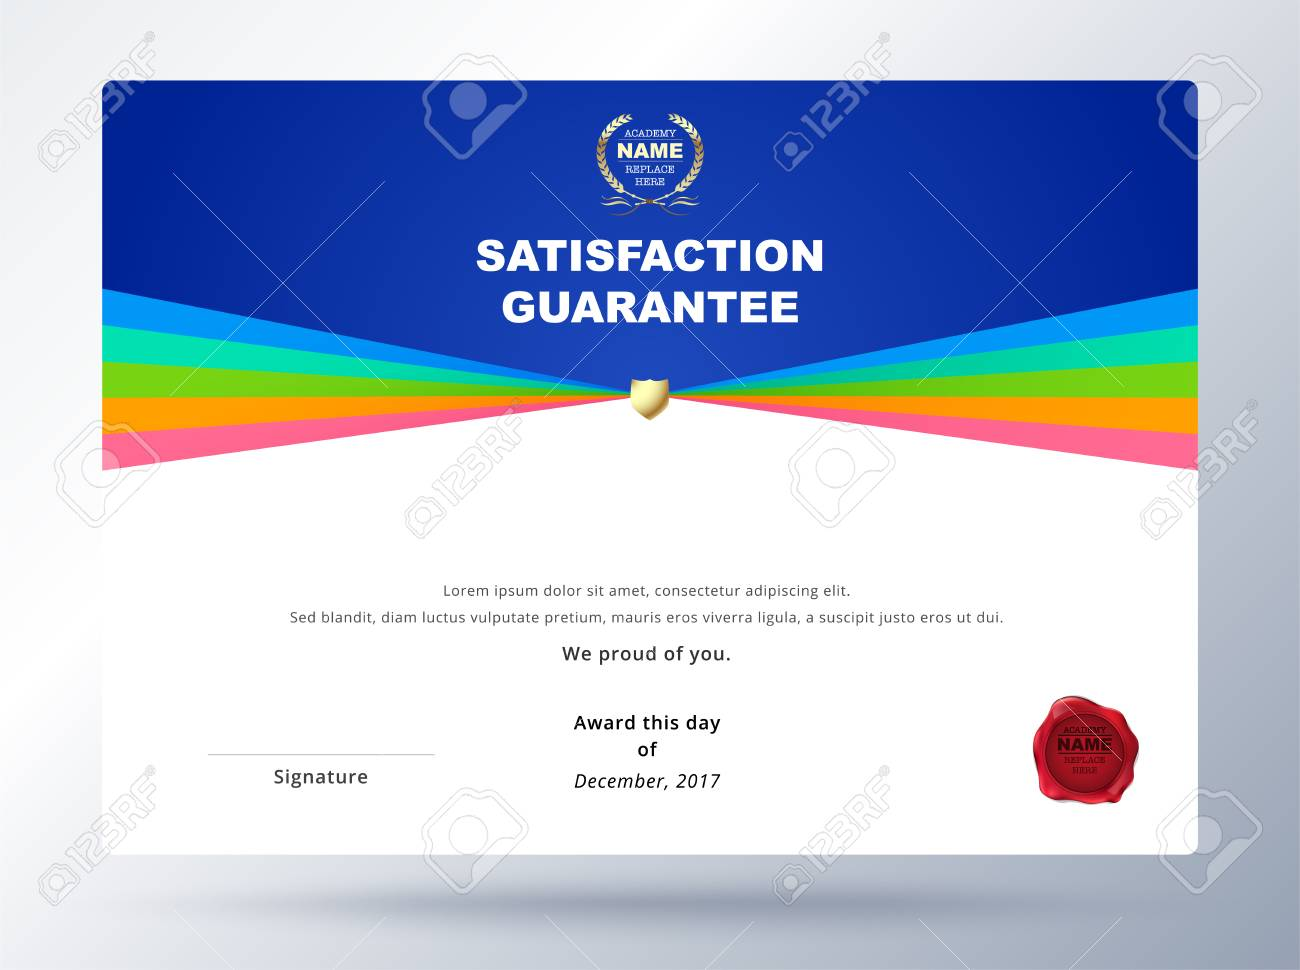 Satisfaction Guarantee Template Design With Simple Concept Certificate